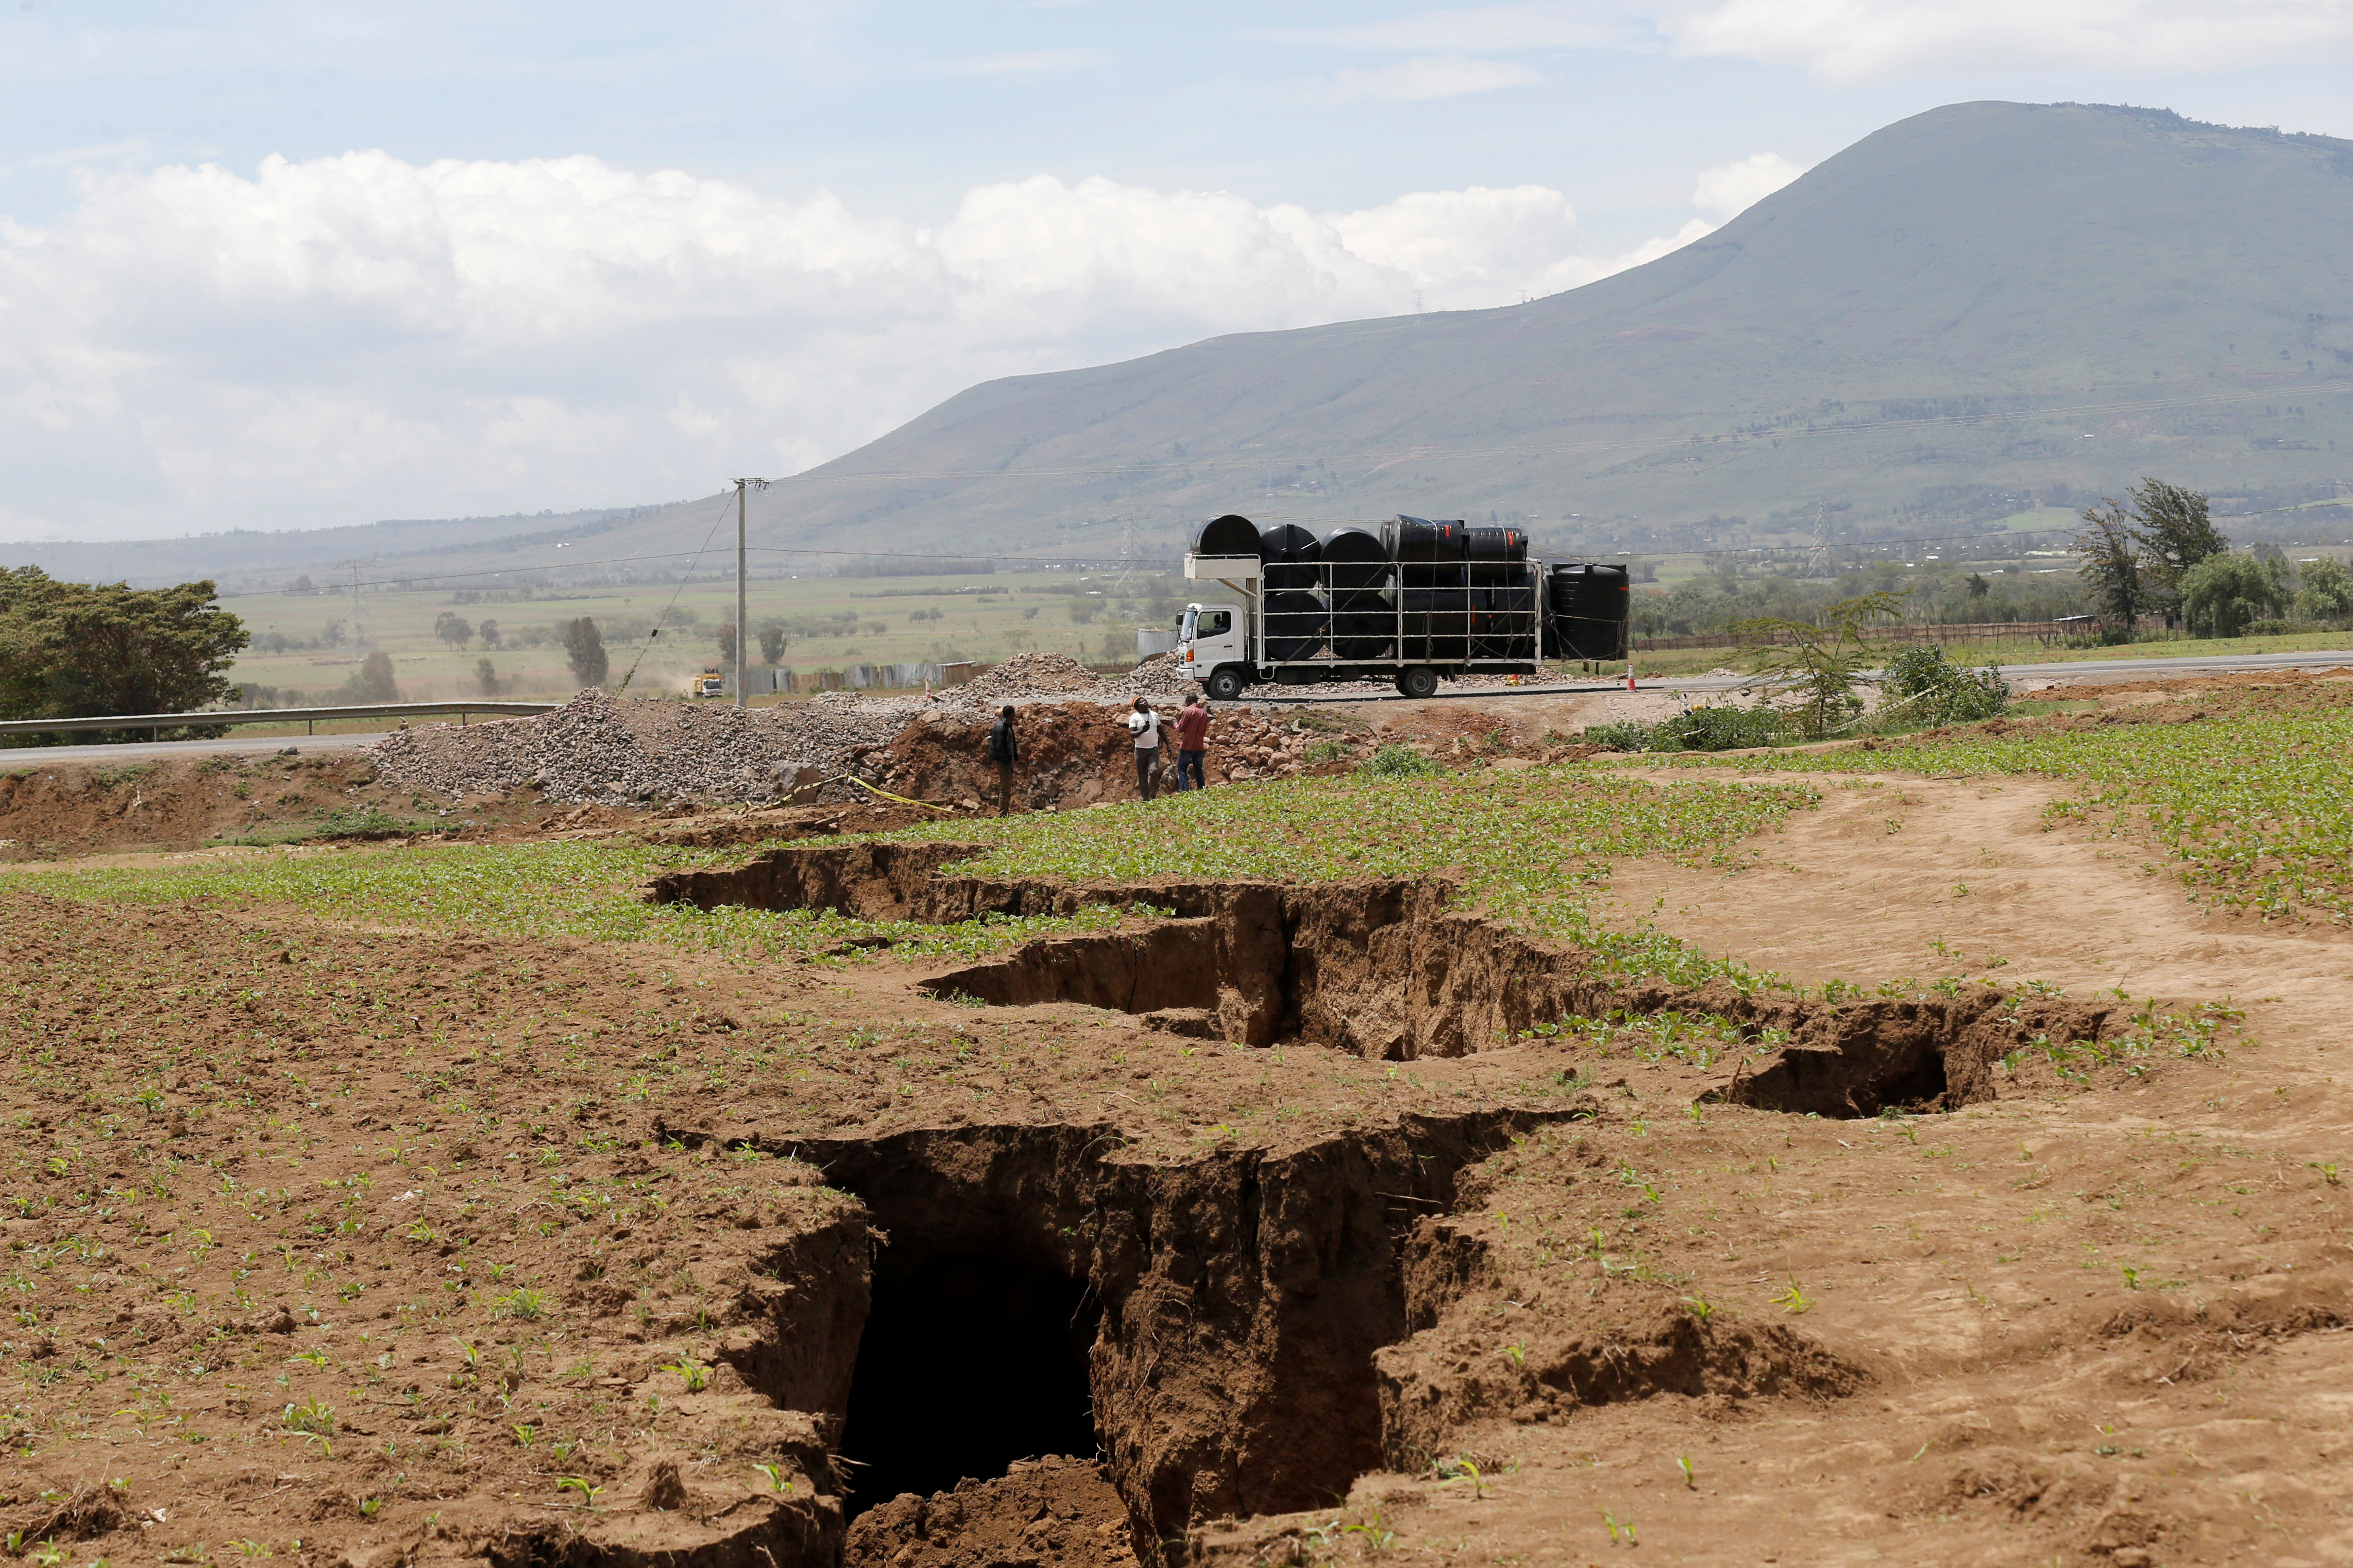 A truck drives near a chasm suspected to have been caused by a heavy downpour along an underground fault-line near the Rift Valley town of Mai Mahiu